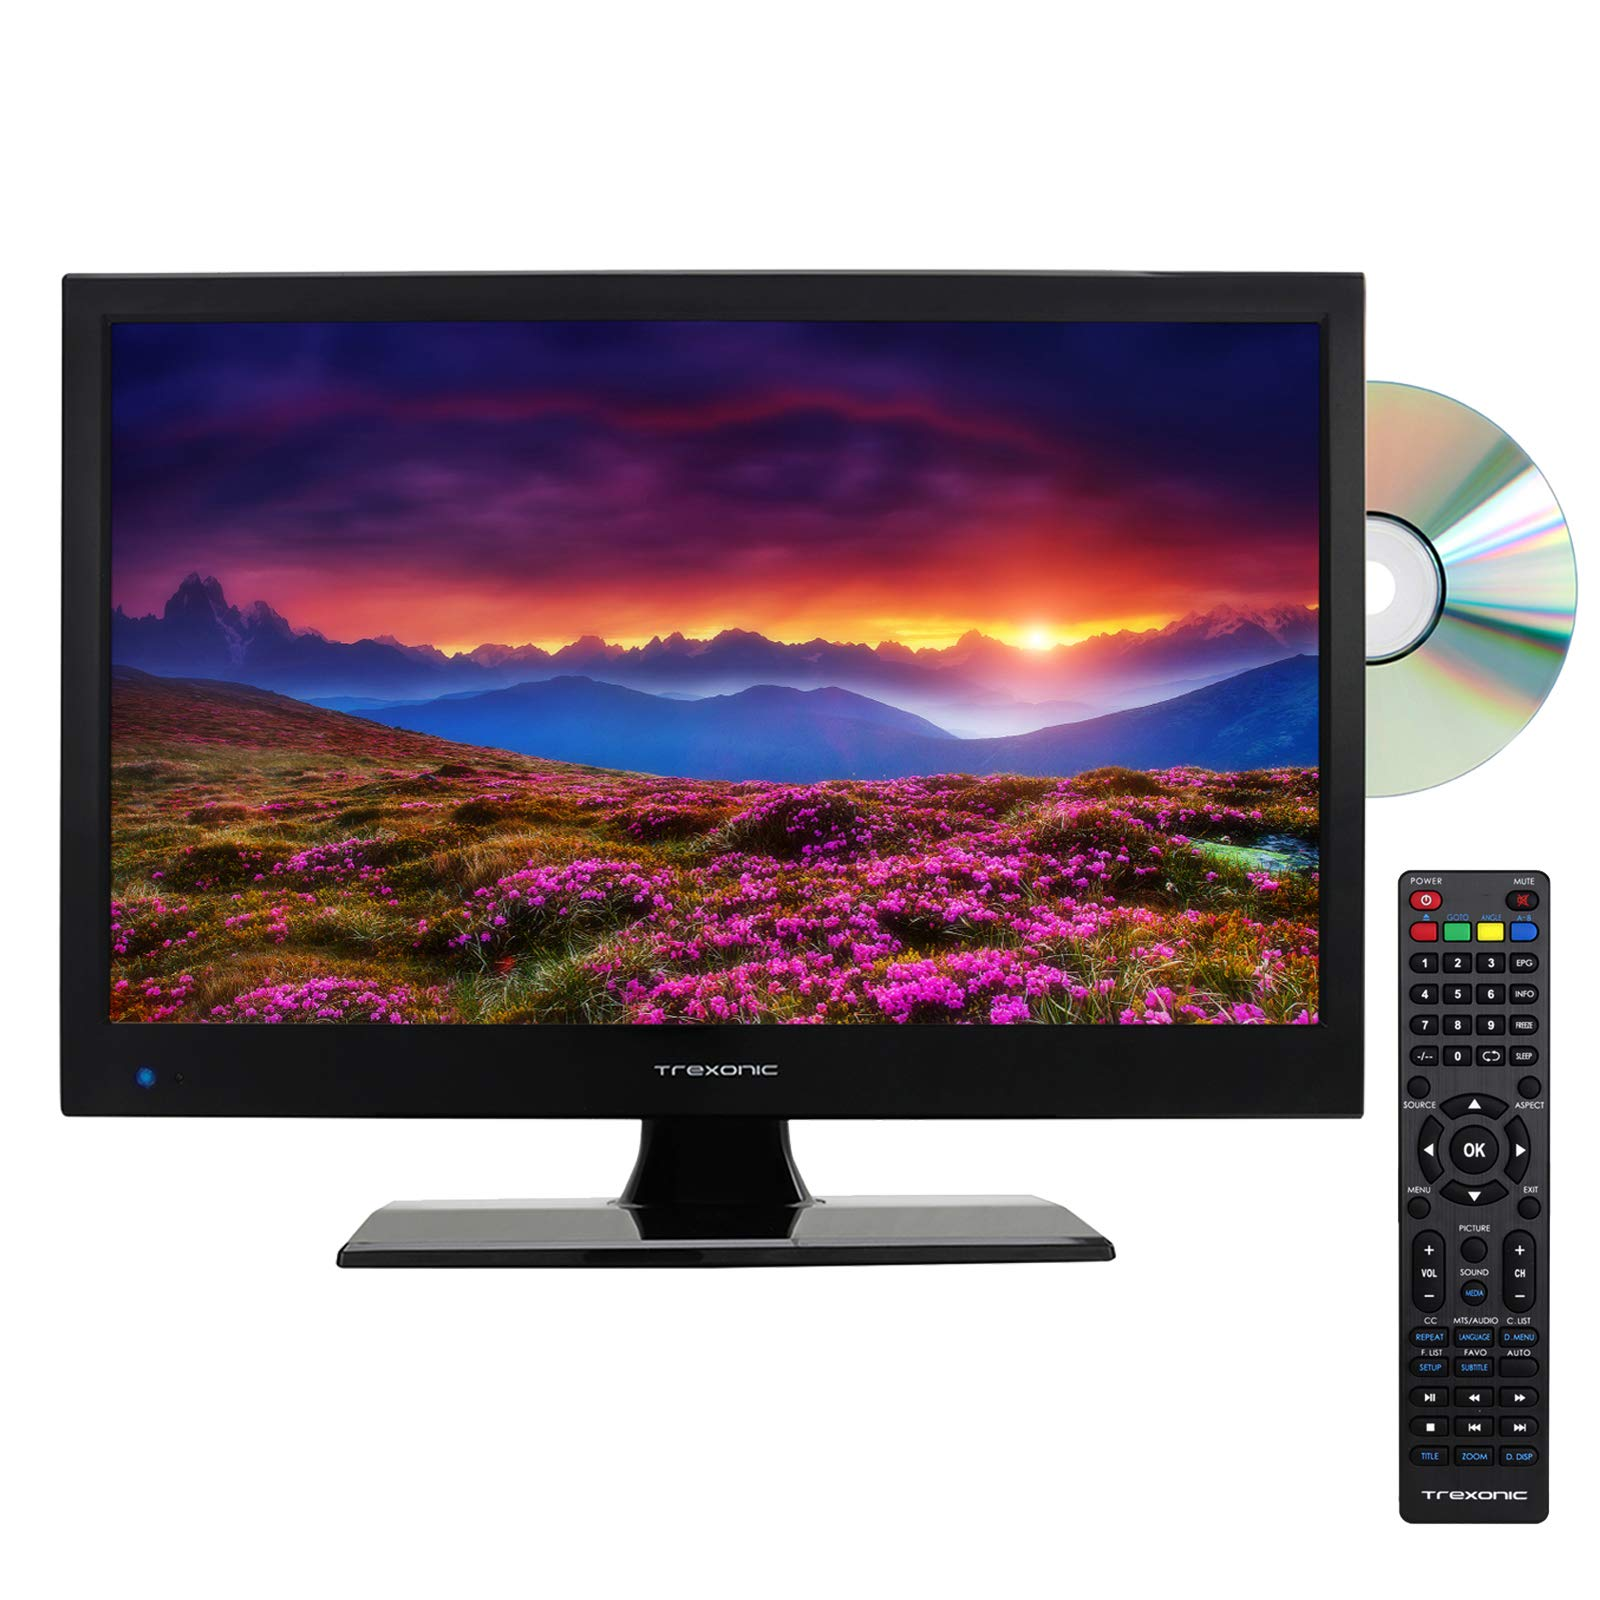 Trexonic 15.6'' LED Television with Built-in DVD Player and Multimedia Inputs by Trexonic